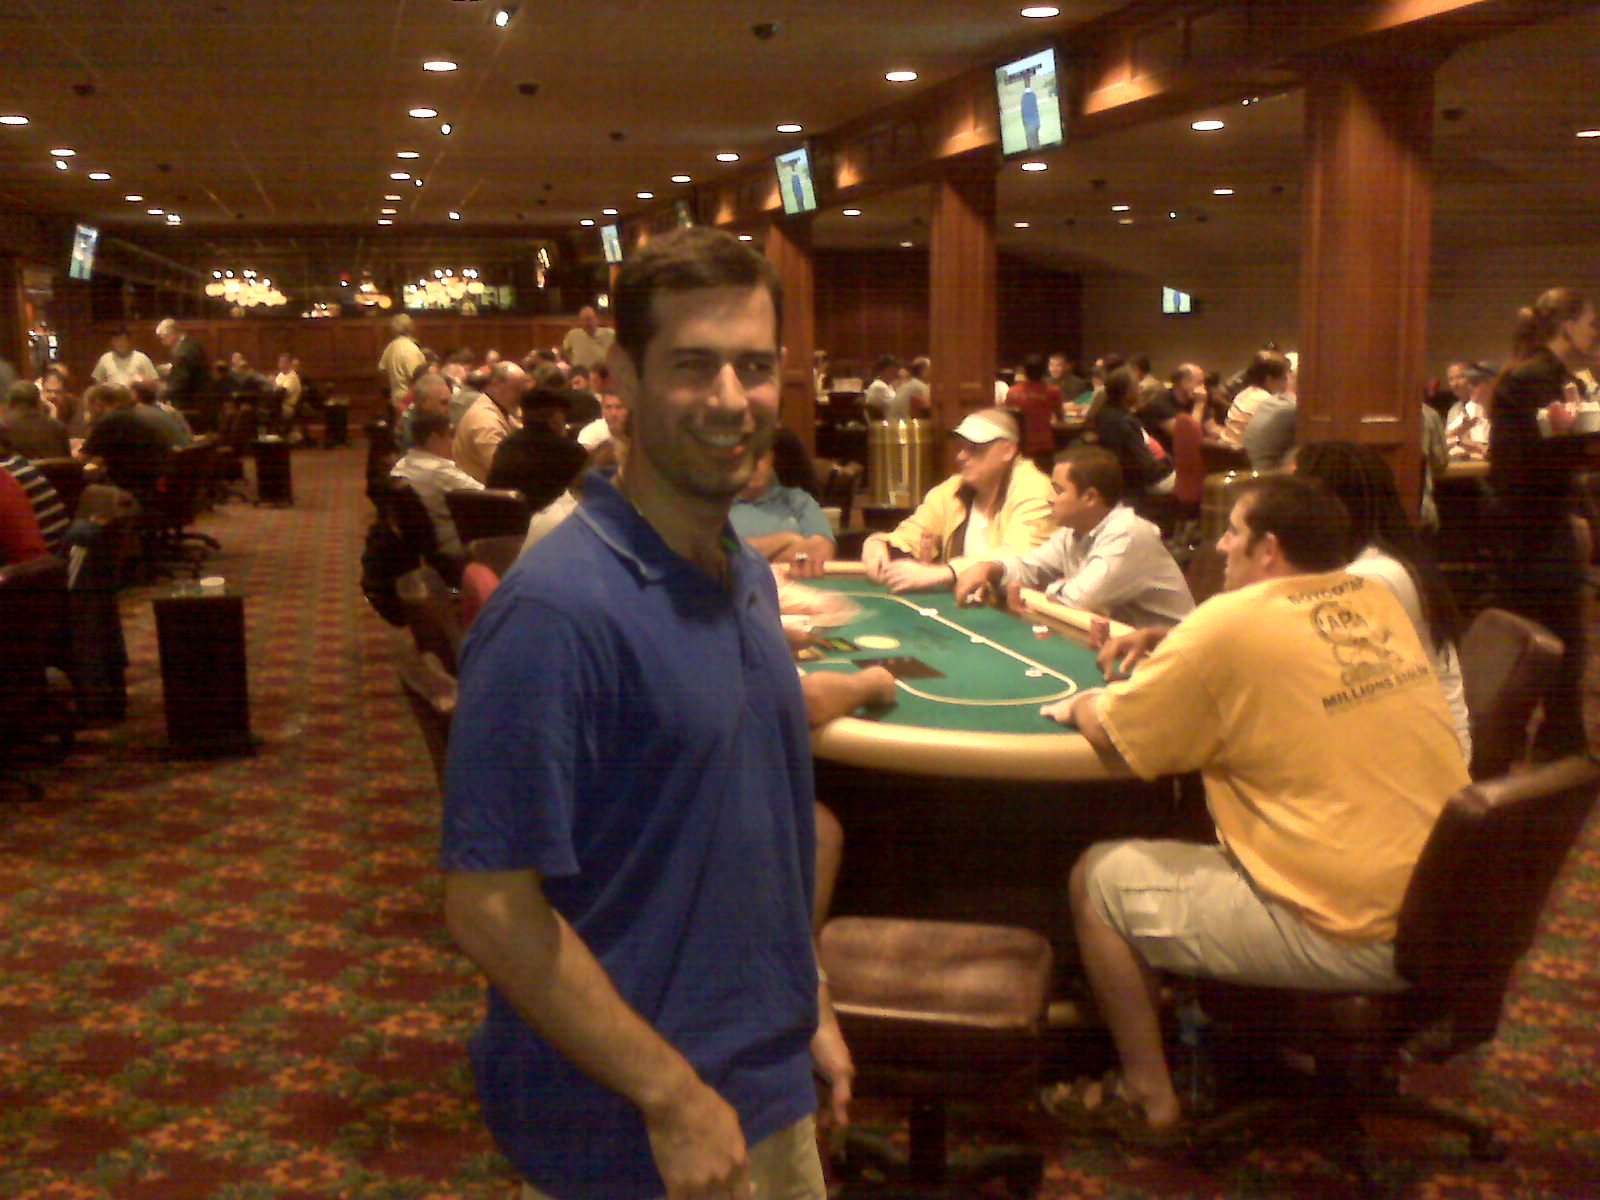 Chumash casino poker tournament paradice casino poker room